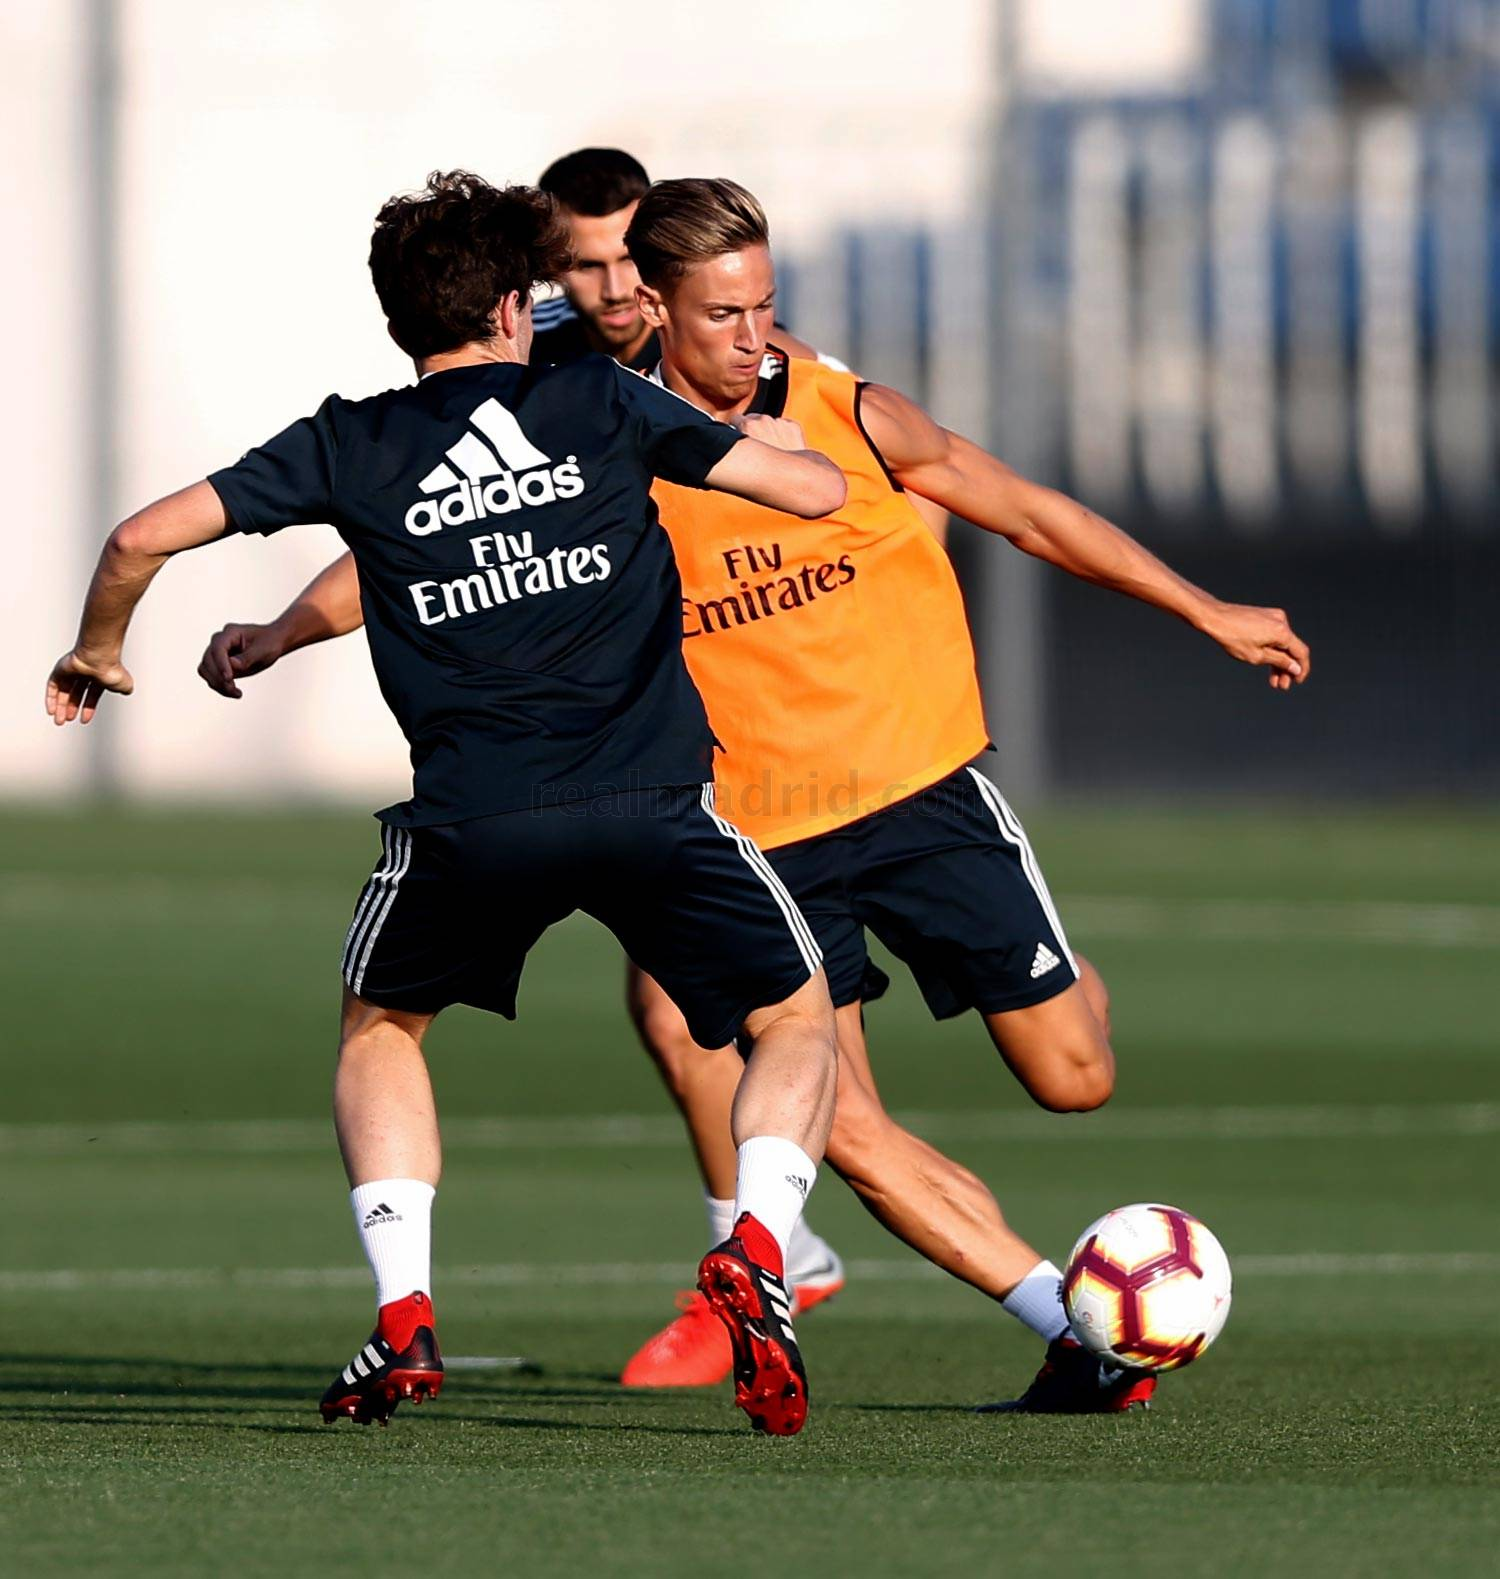 Real Madrid - Entrenamiento del Real Madrid - 17-08-2018